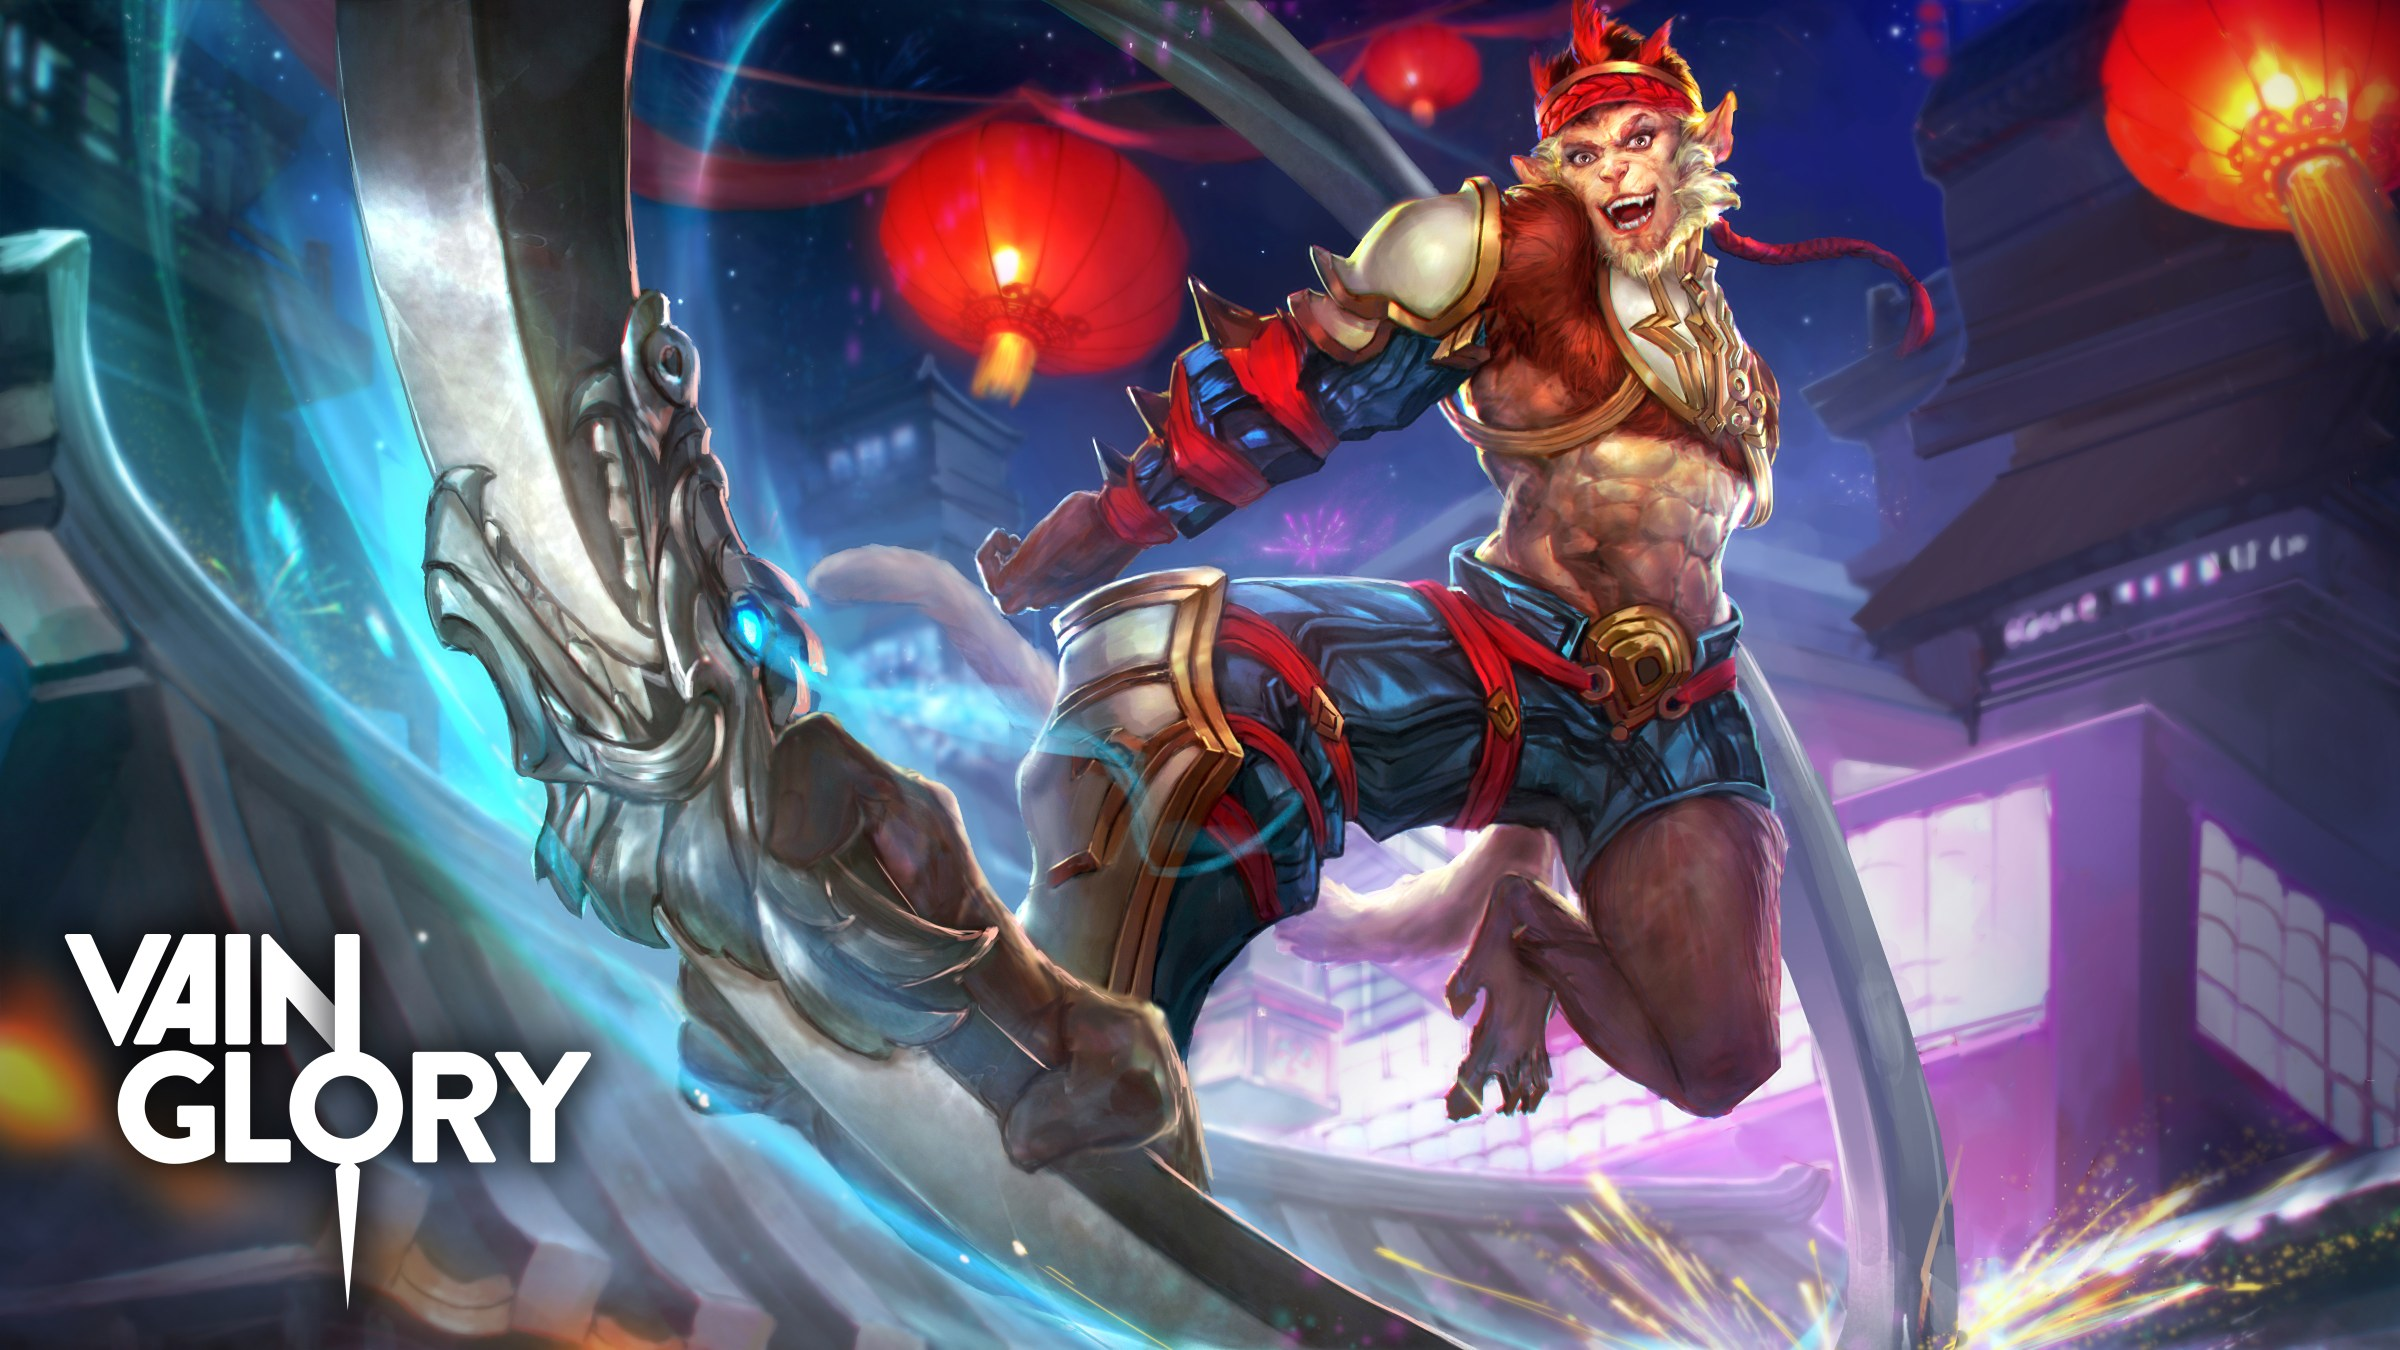 PAX South 2016 Vainglory 114 And New Character Ozo